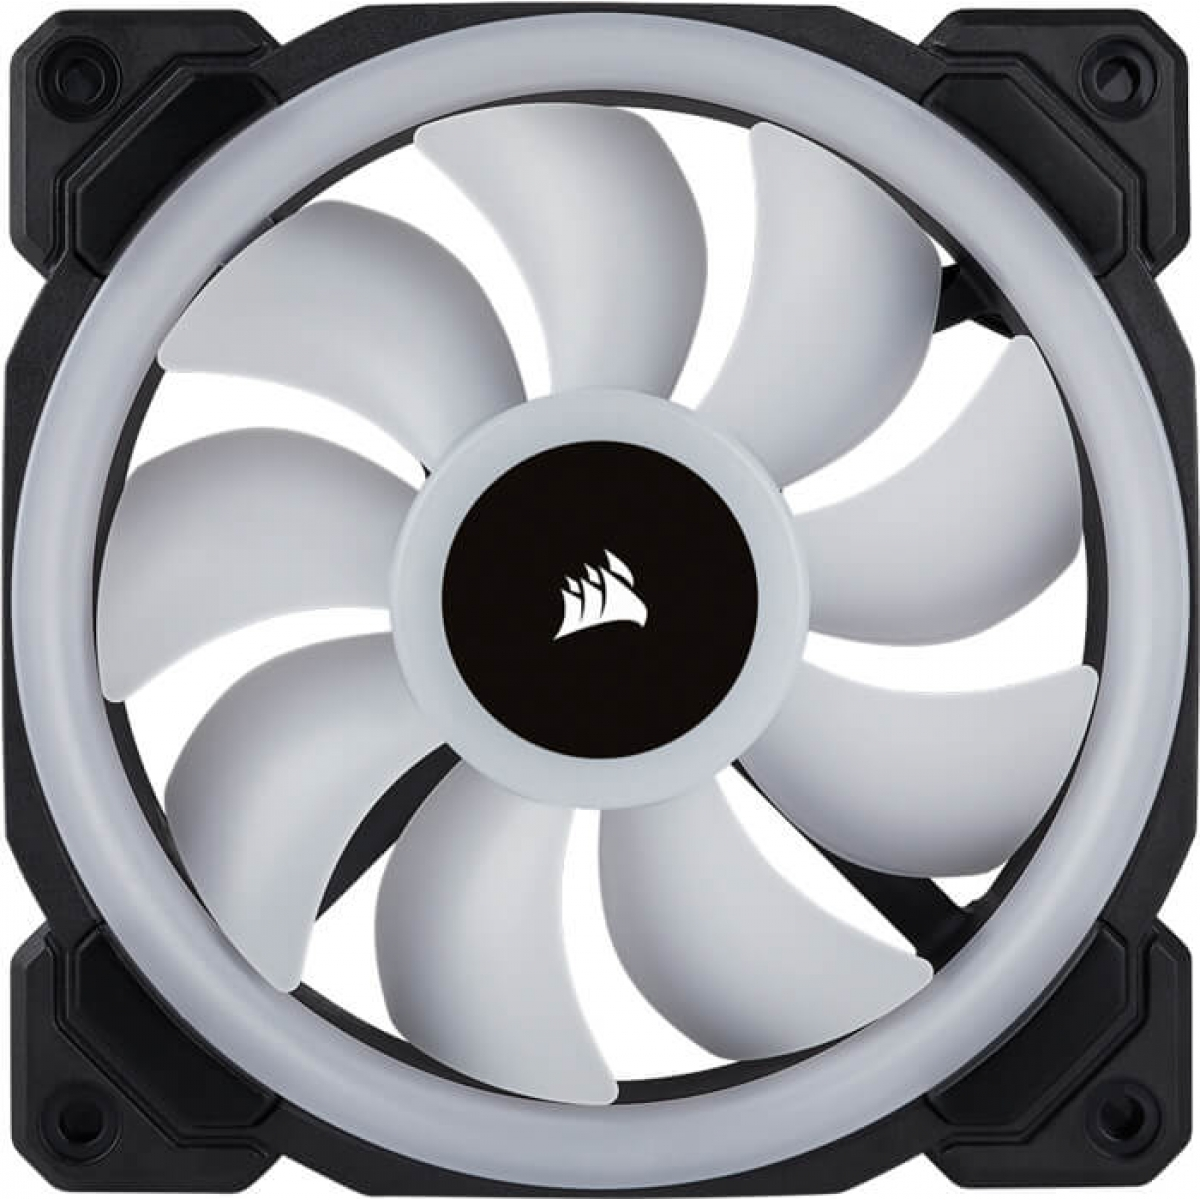 Cooler para Gabinete Corsair LL120 RGB 120mm CO-9050071-WW